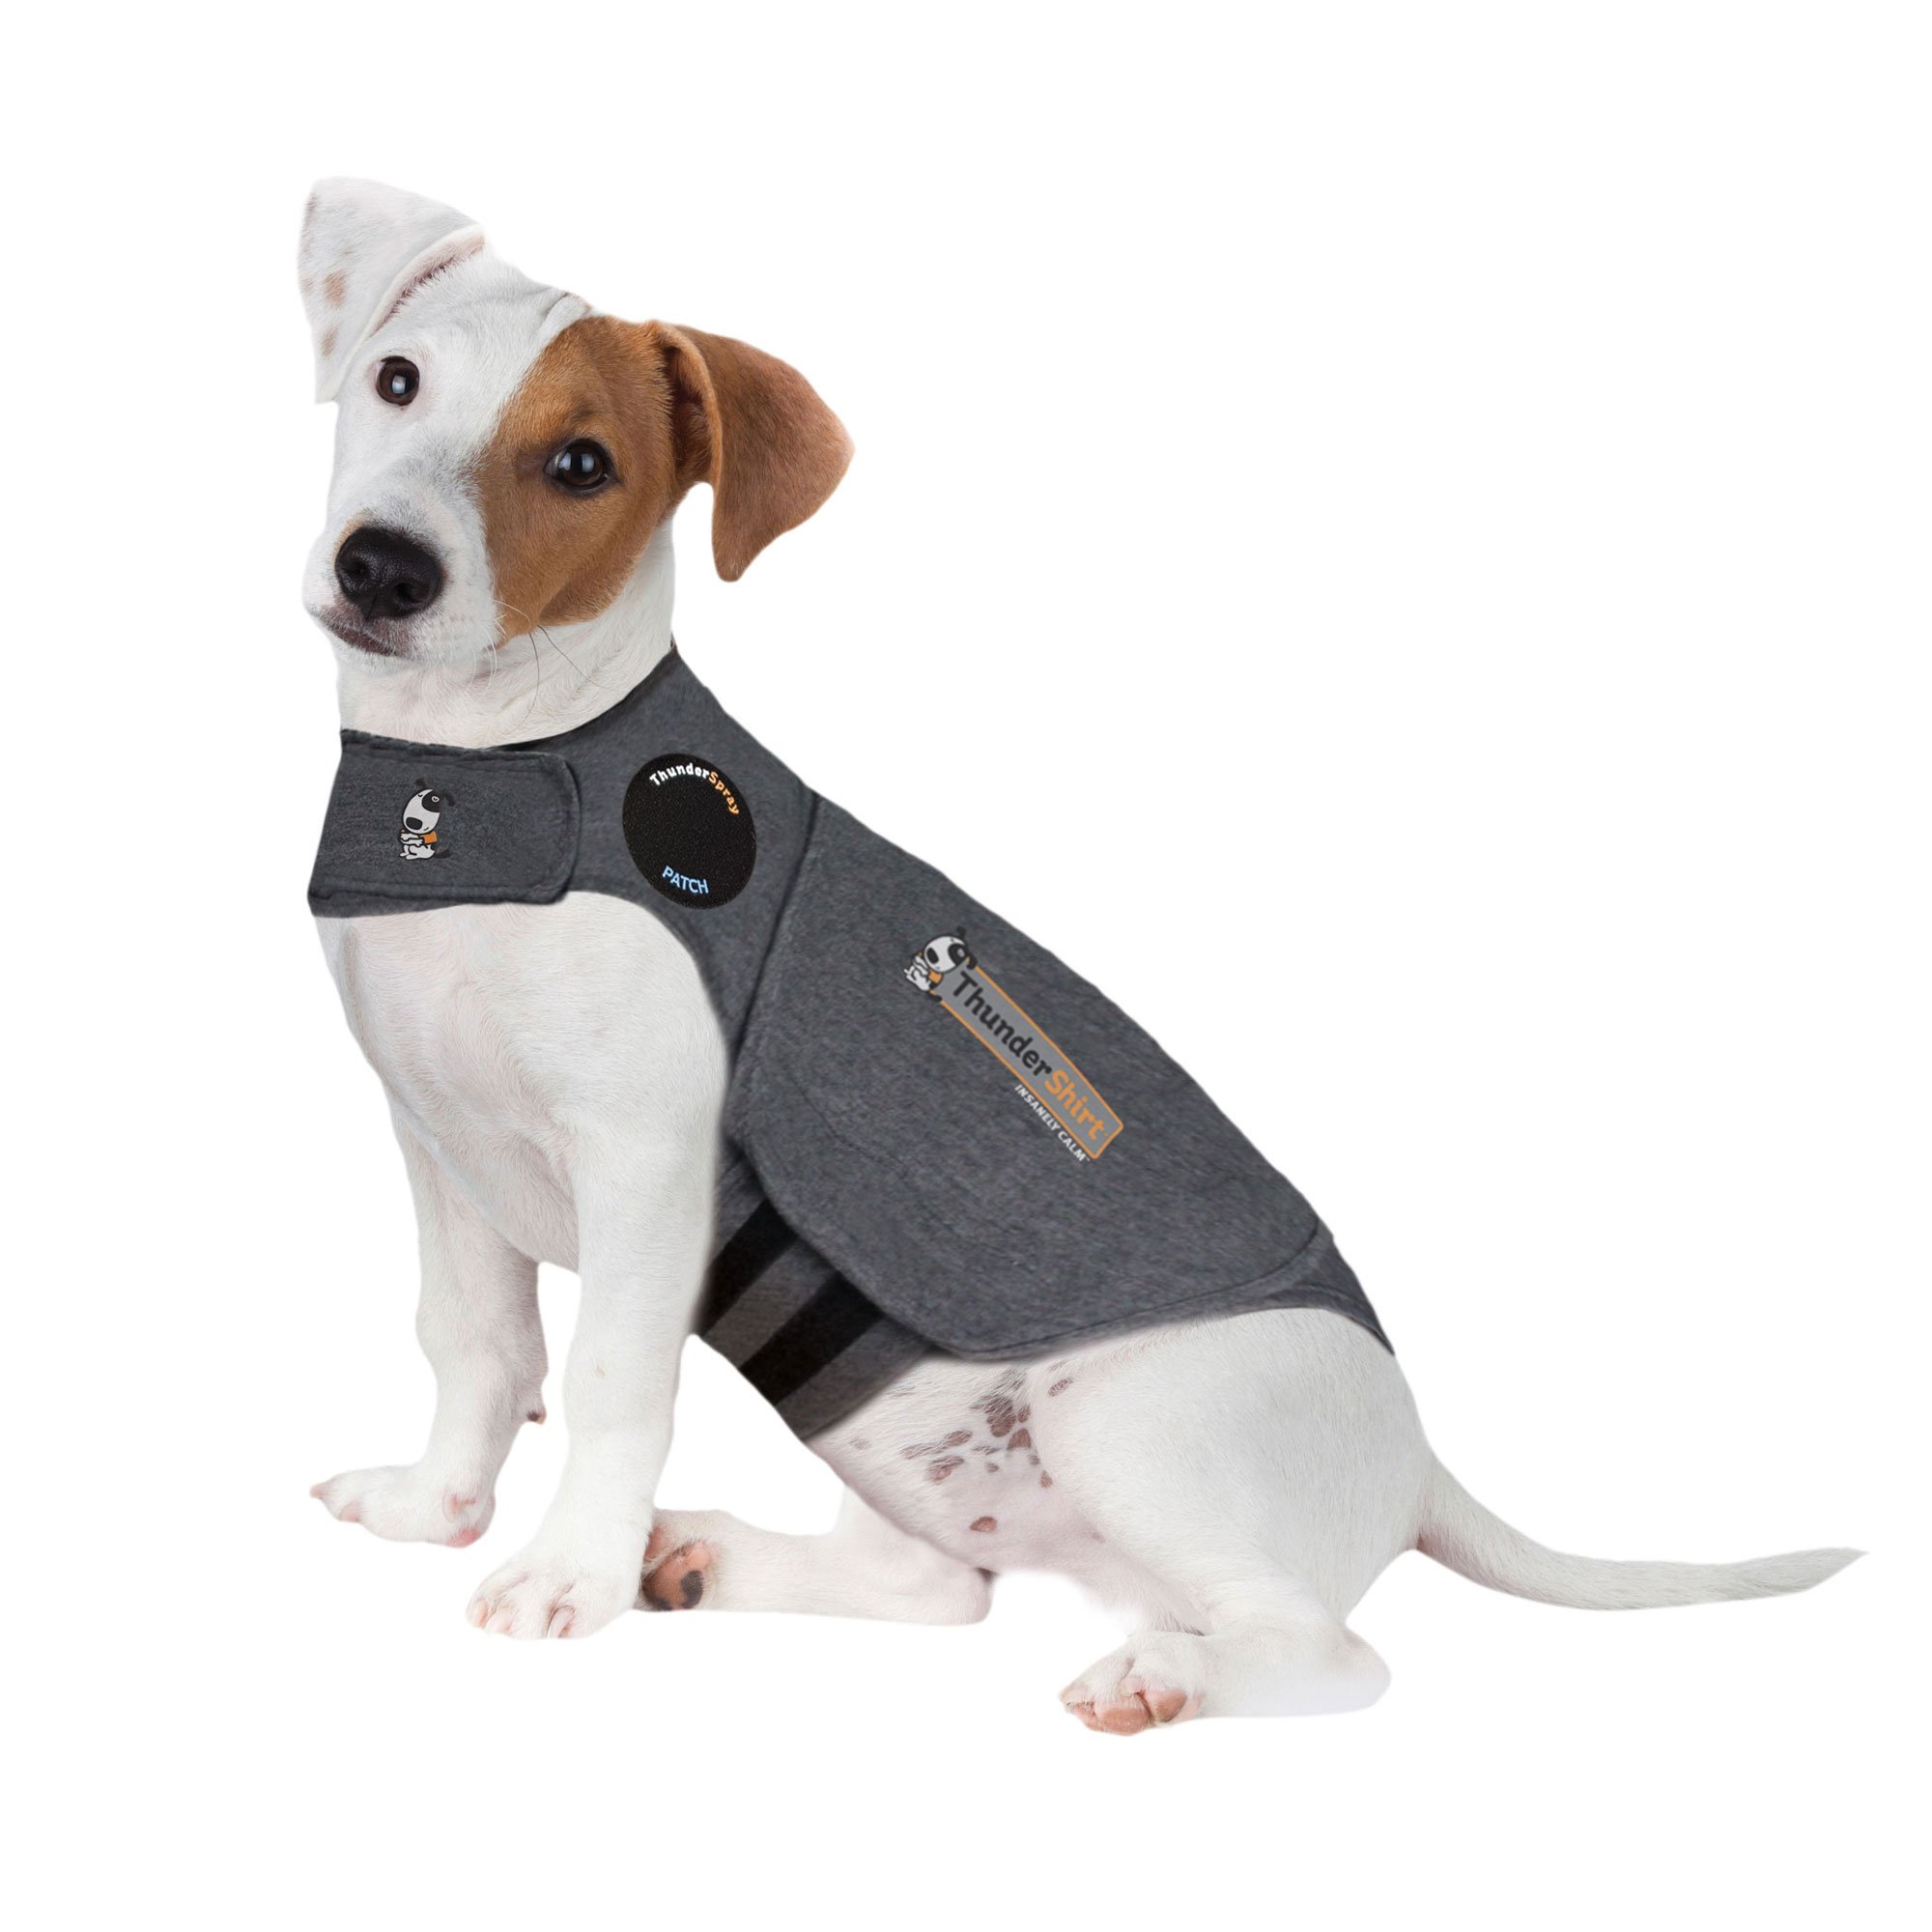 ThunderShirt Classic Dog Anxiety Jacket | Vet Recommended Calming Solution Vest for Fireworks, Thunder, Travel, & Separation | Heather Gray, Small by Thundershirt